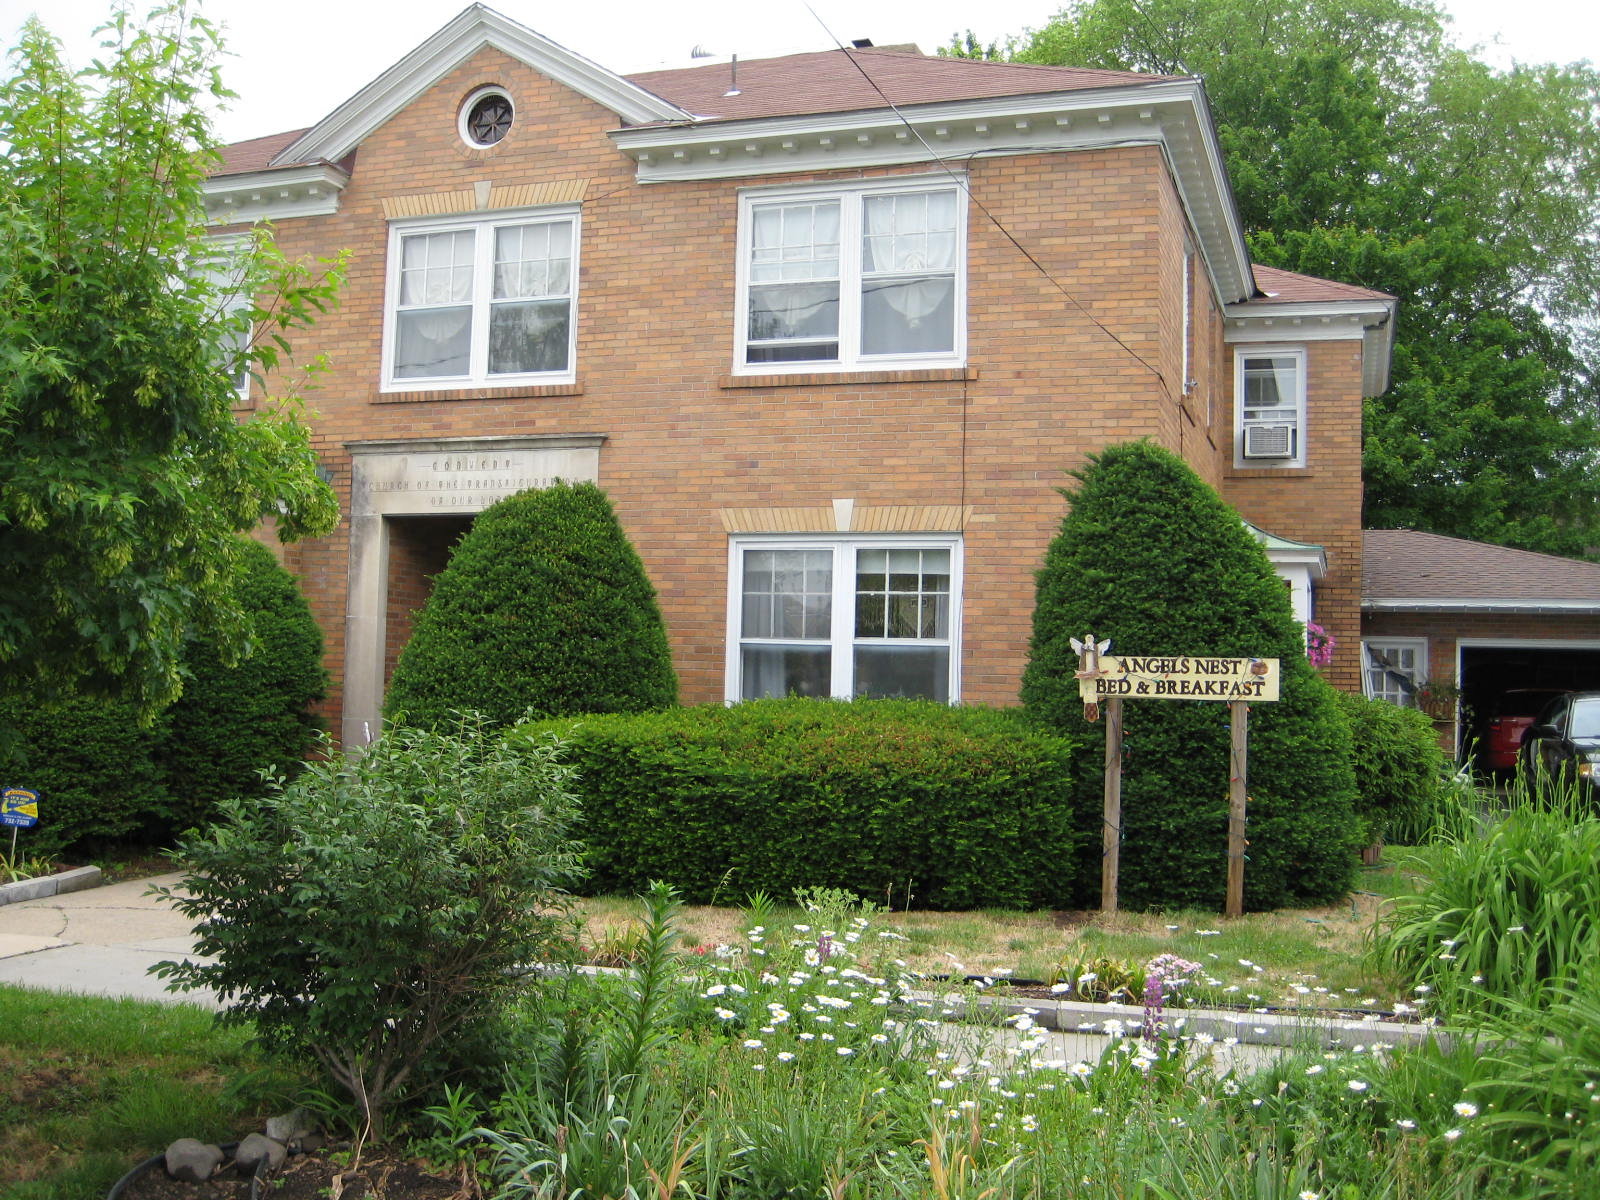 The Convent: Angels Nest Bed & Breakfast